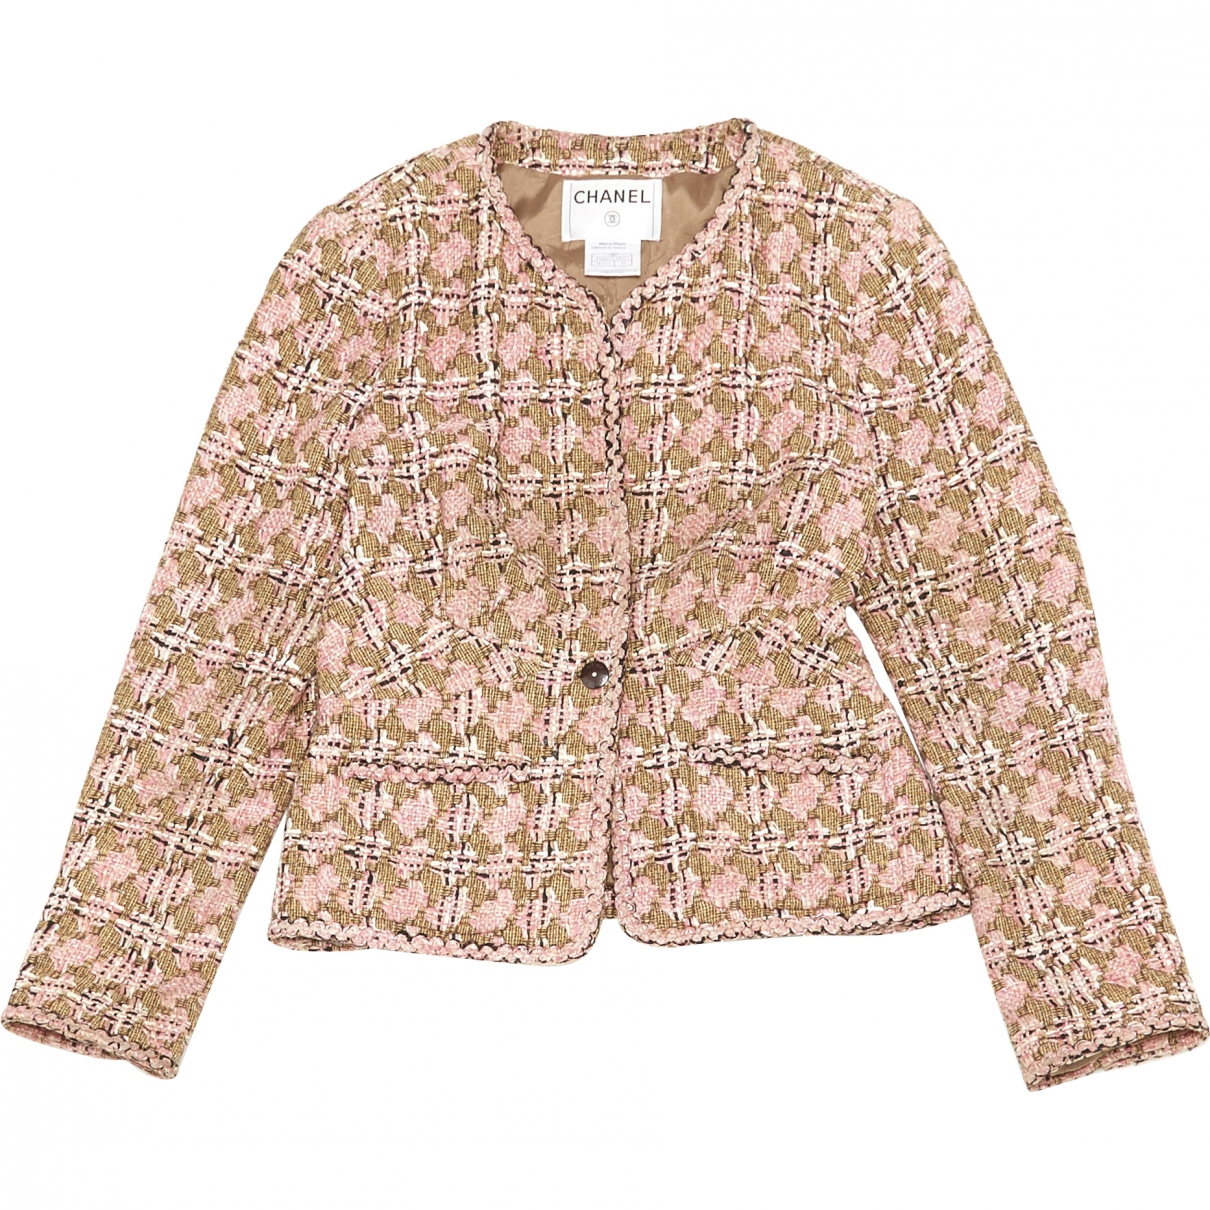 Chanel \N Pink Cotton jacket for Women 44 FR